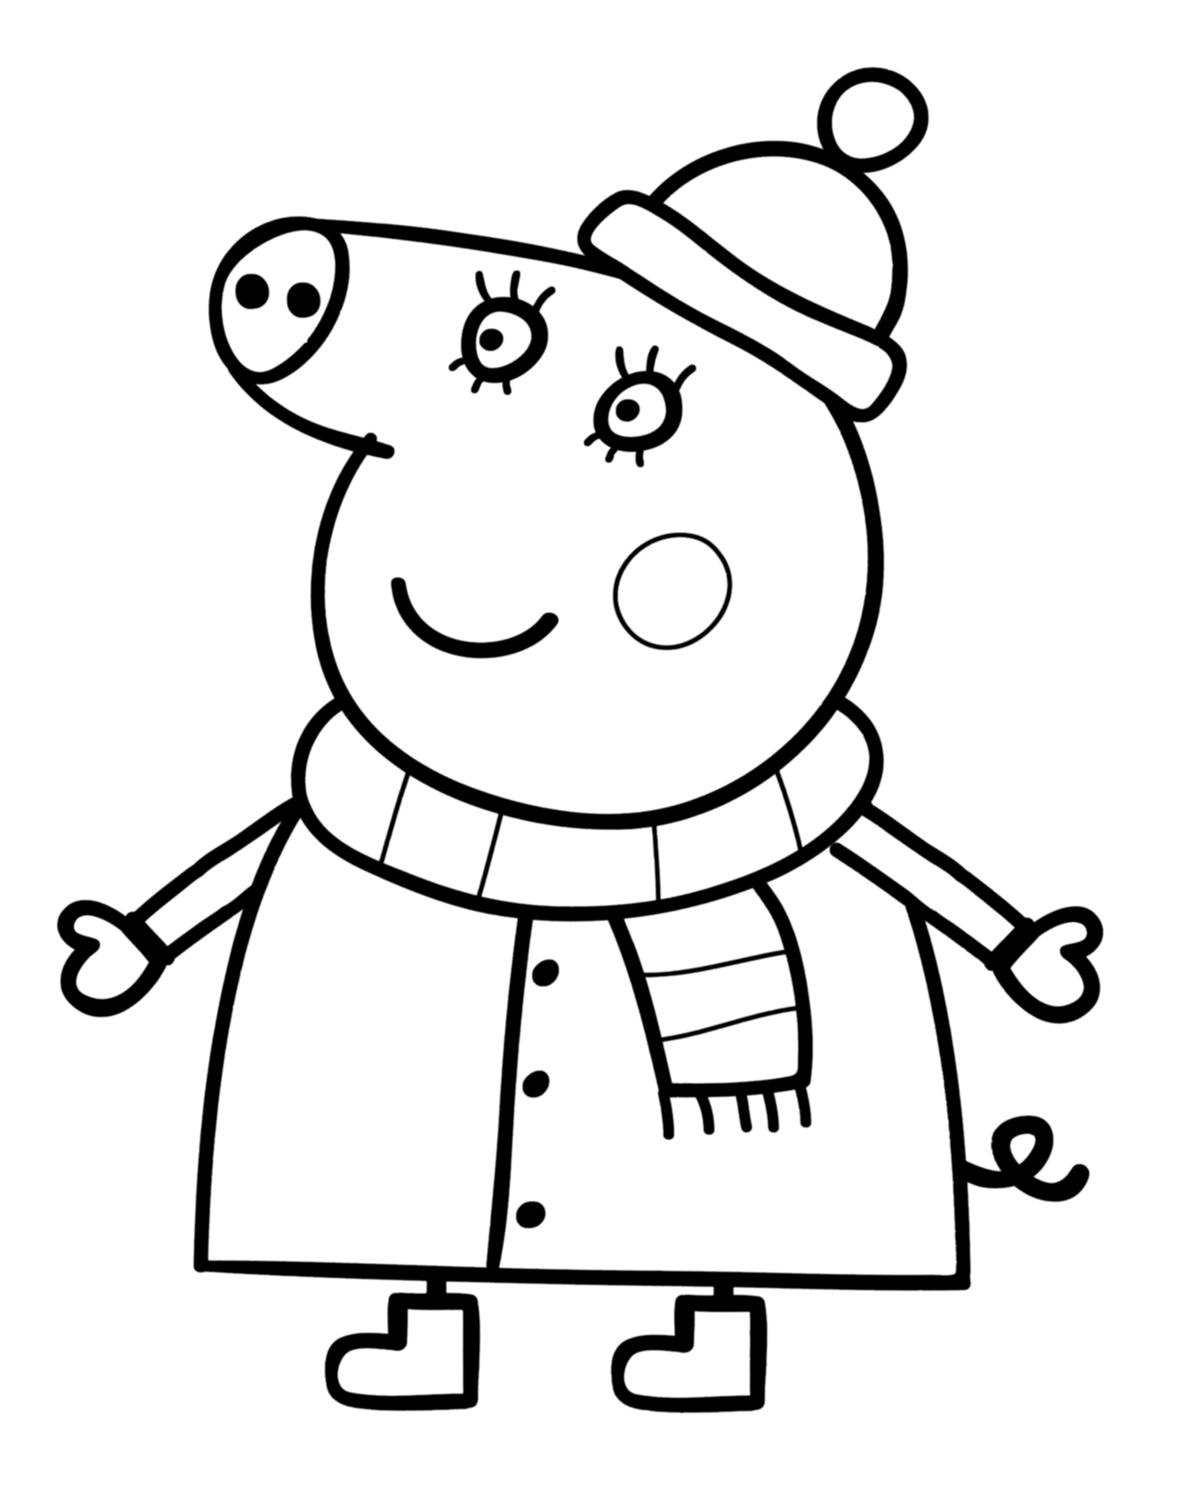 peppa pig colouring pictures to print peppa pig39s royal family coloring page free printable to pig peppa print colouring pictures